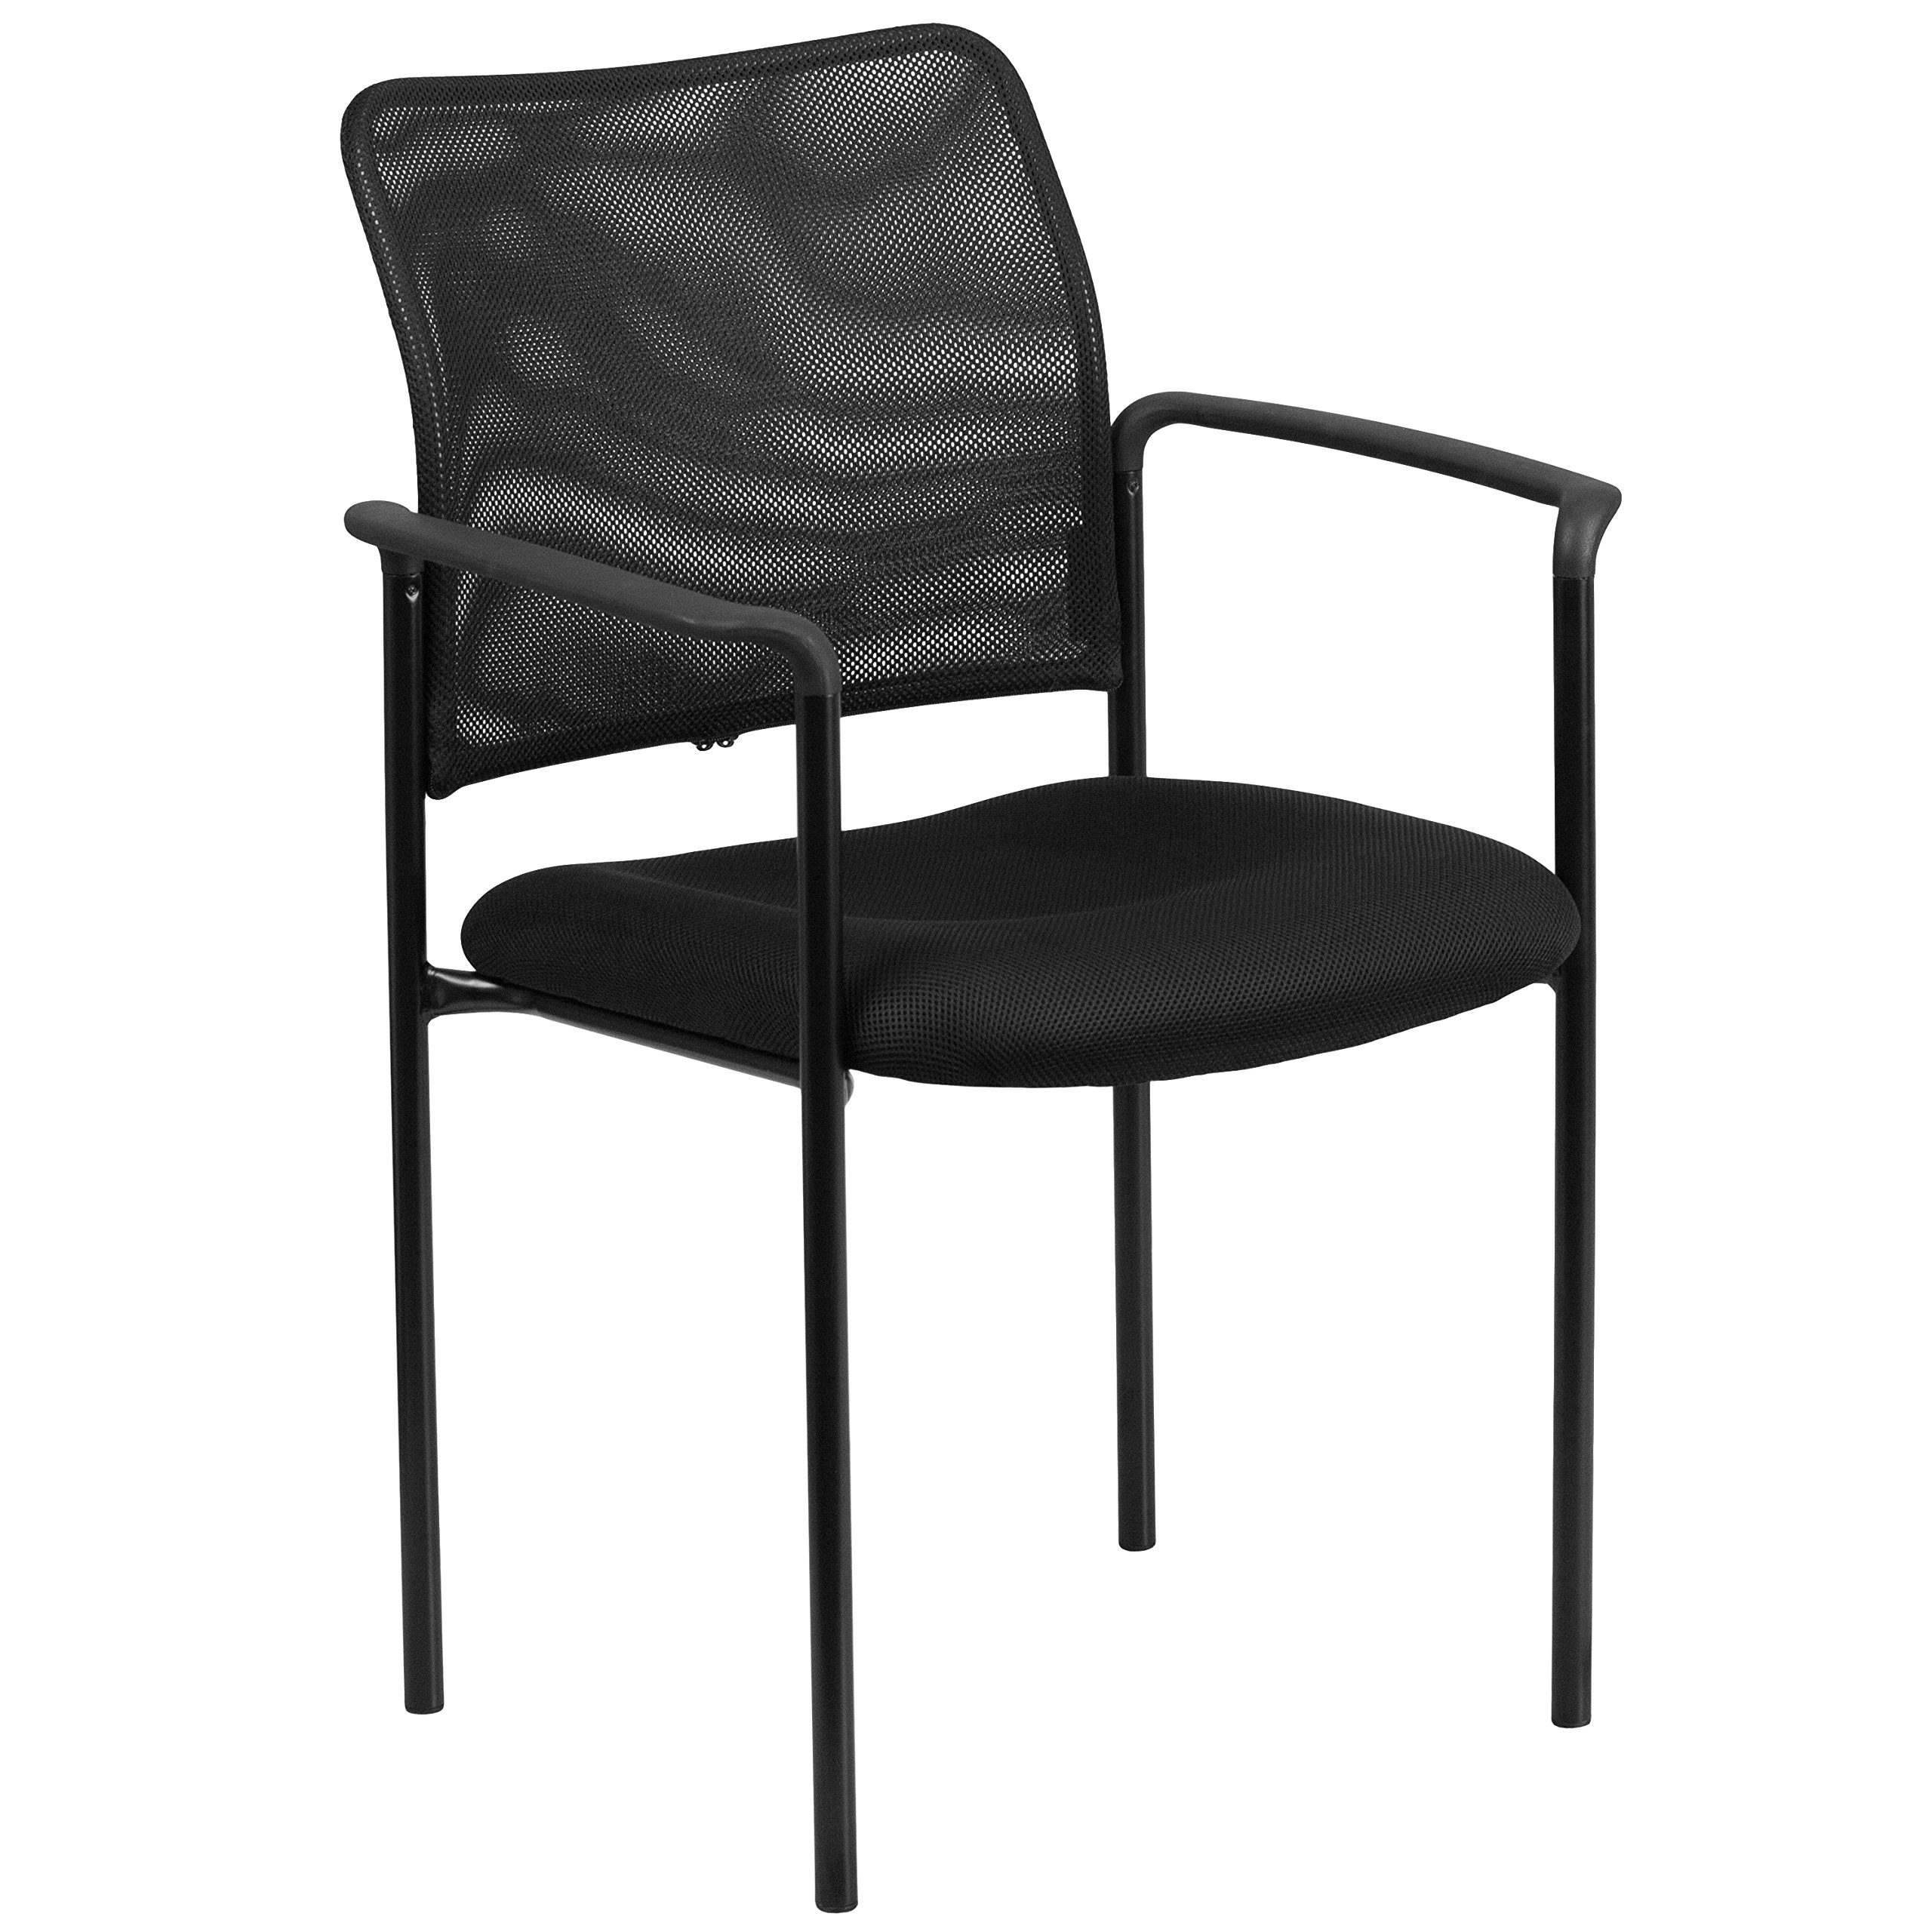 Flash Furniture Comfort Black Mesh Stackable Steel Side Chair with Arms by Flash Furniture